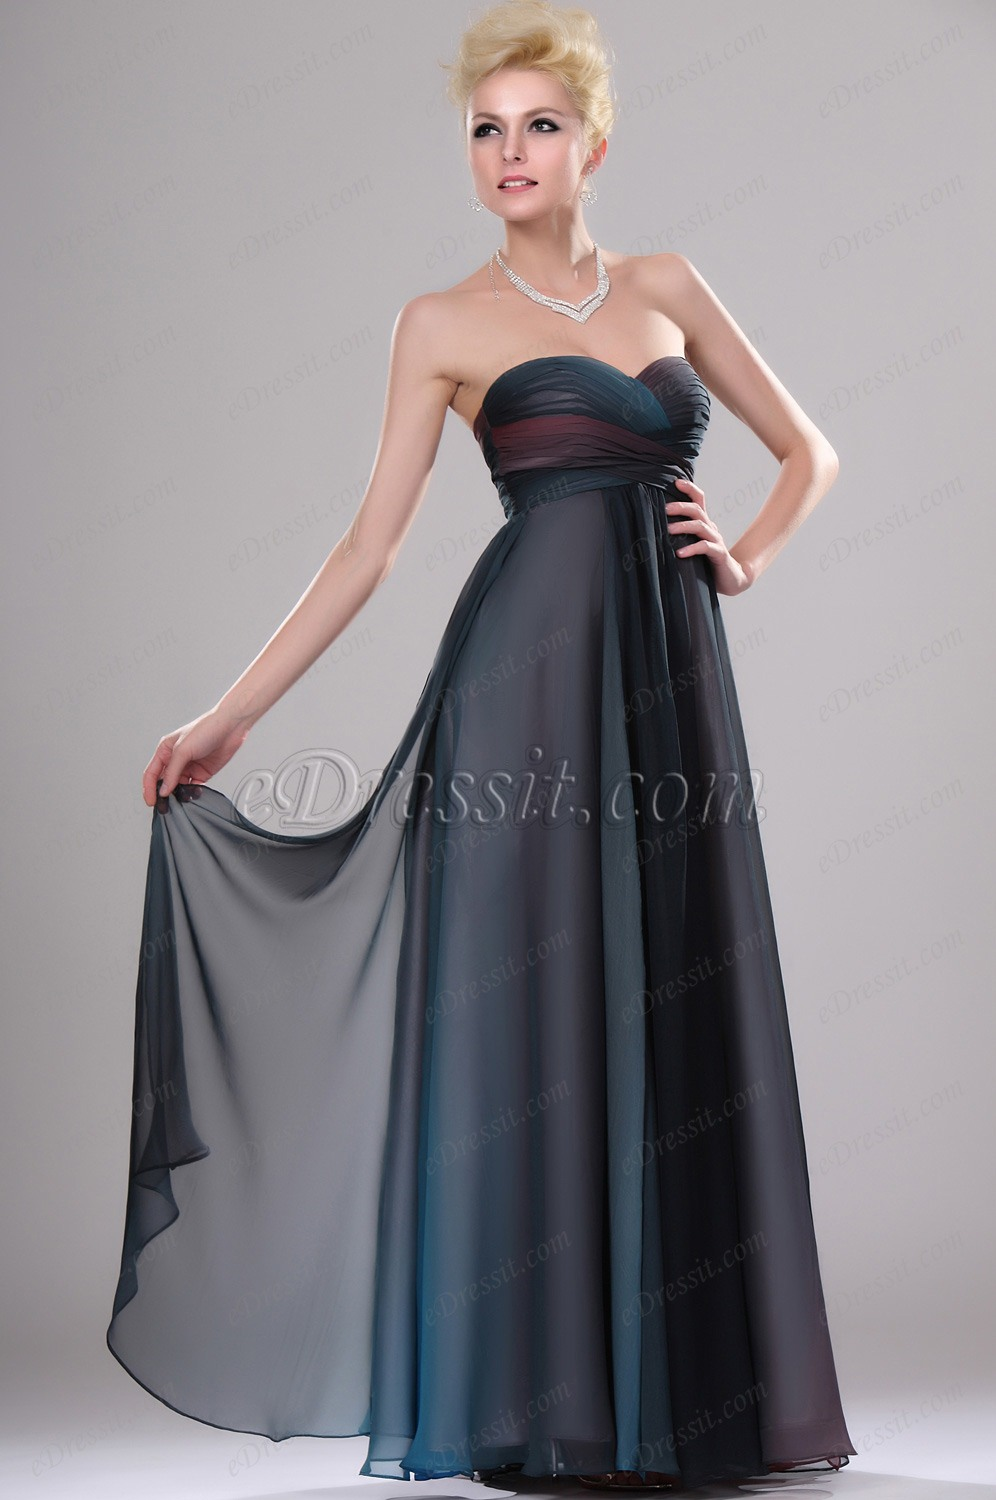 Clearance Sale !eDressit Evening Dress (00113956C)